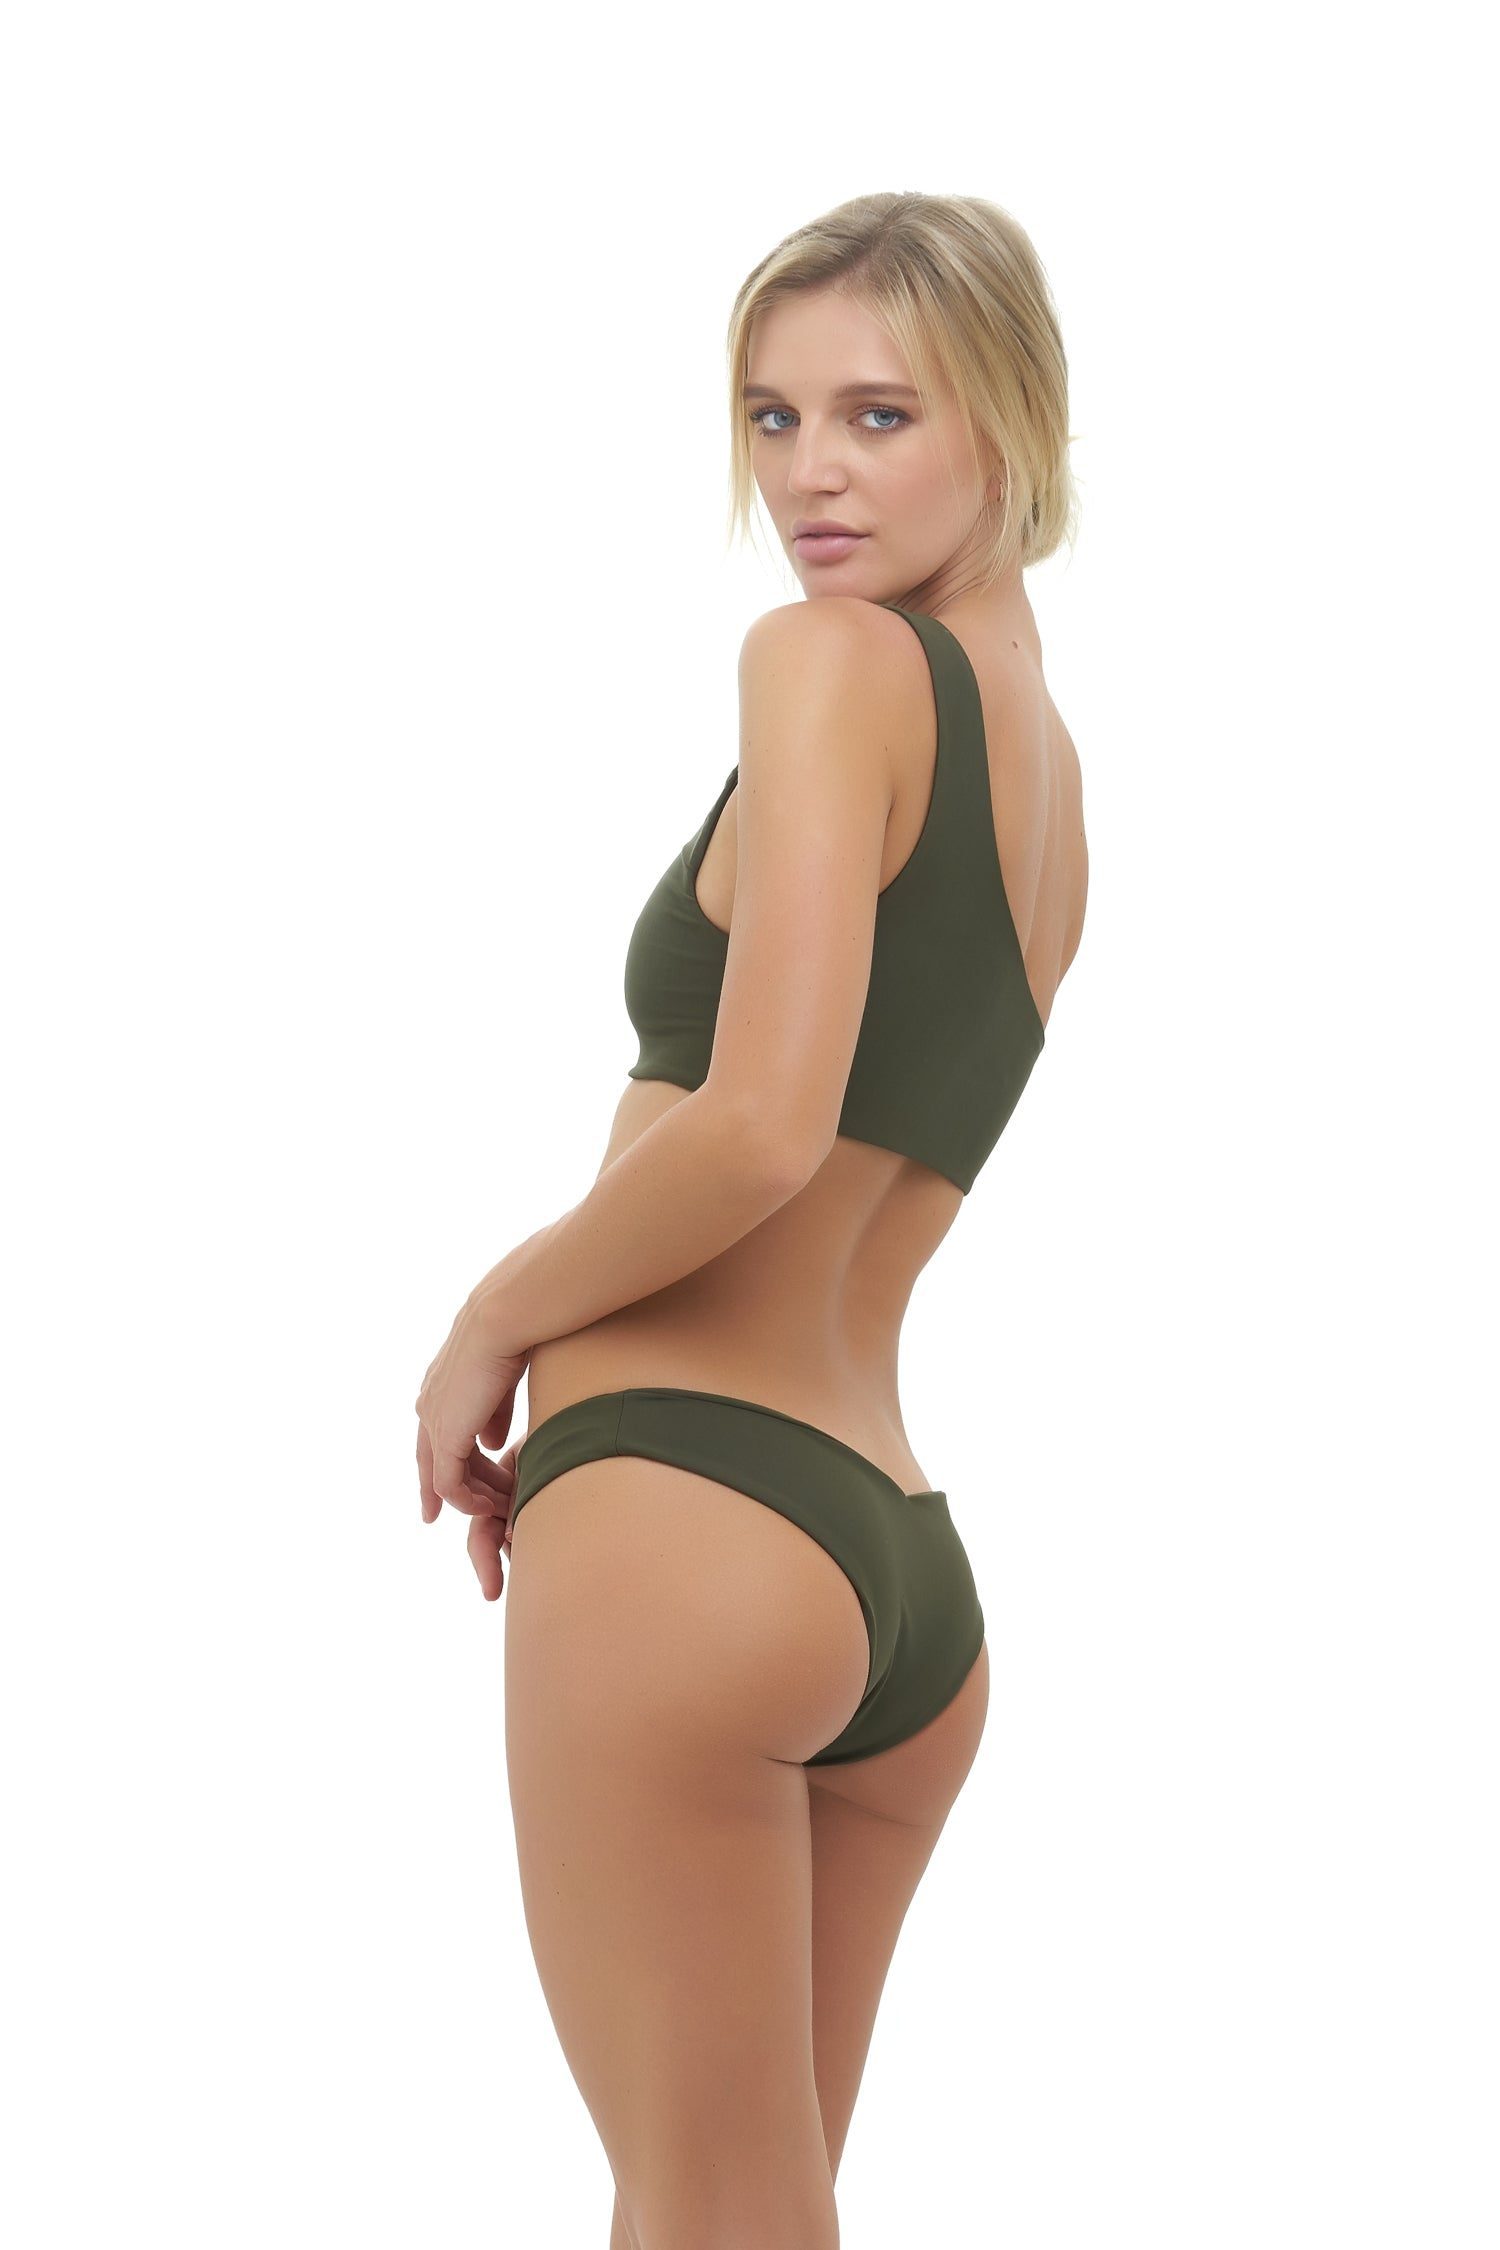 Storm Swimwear - Cinque Terre - One shoulder bikini top in Military Green